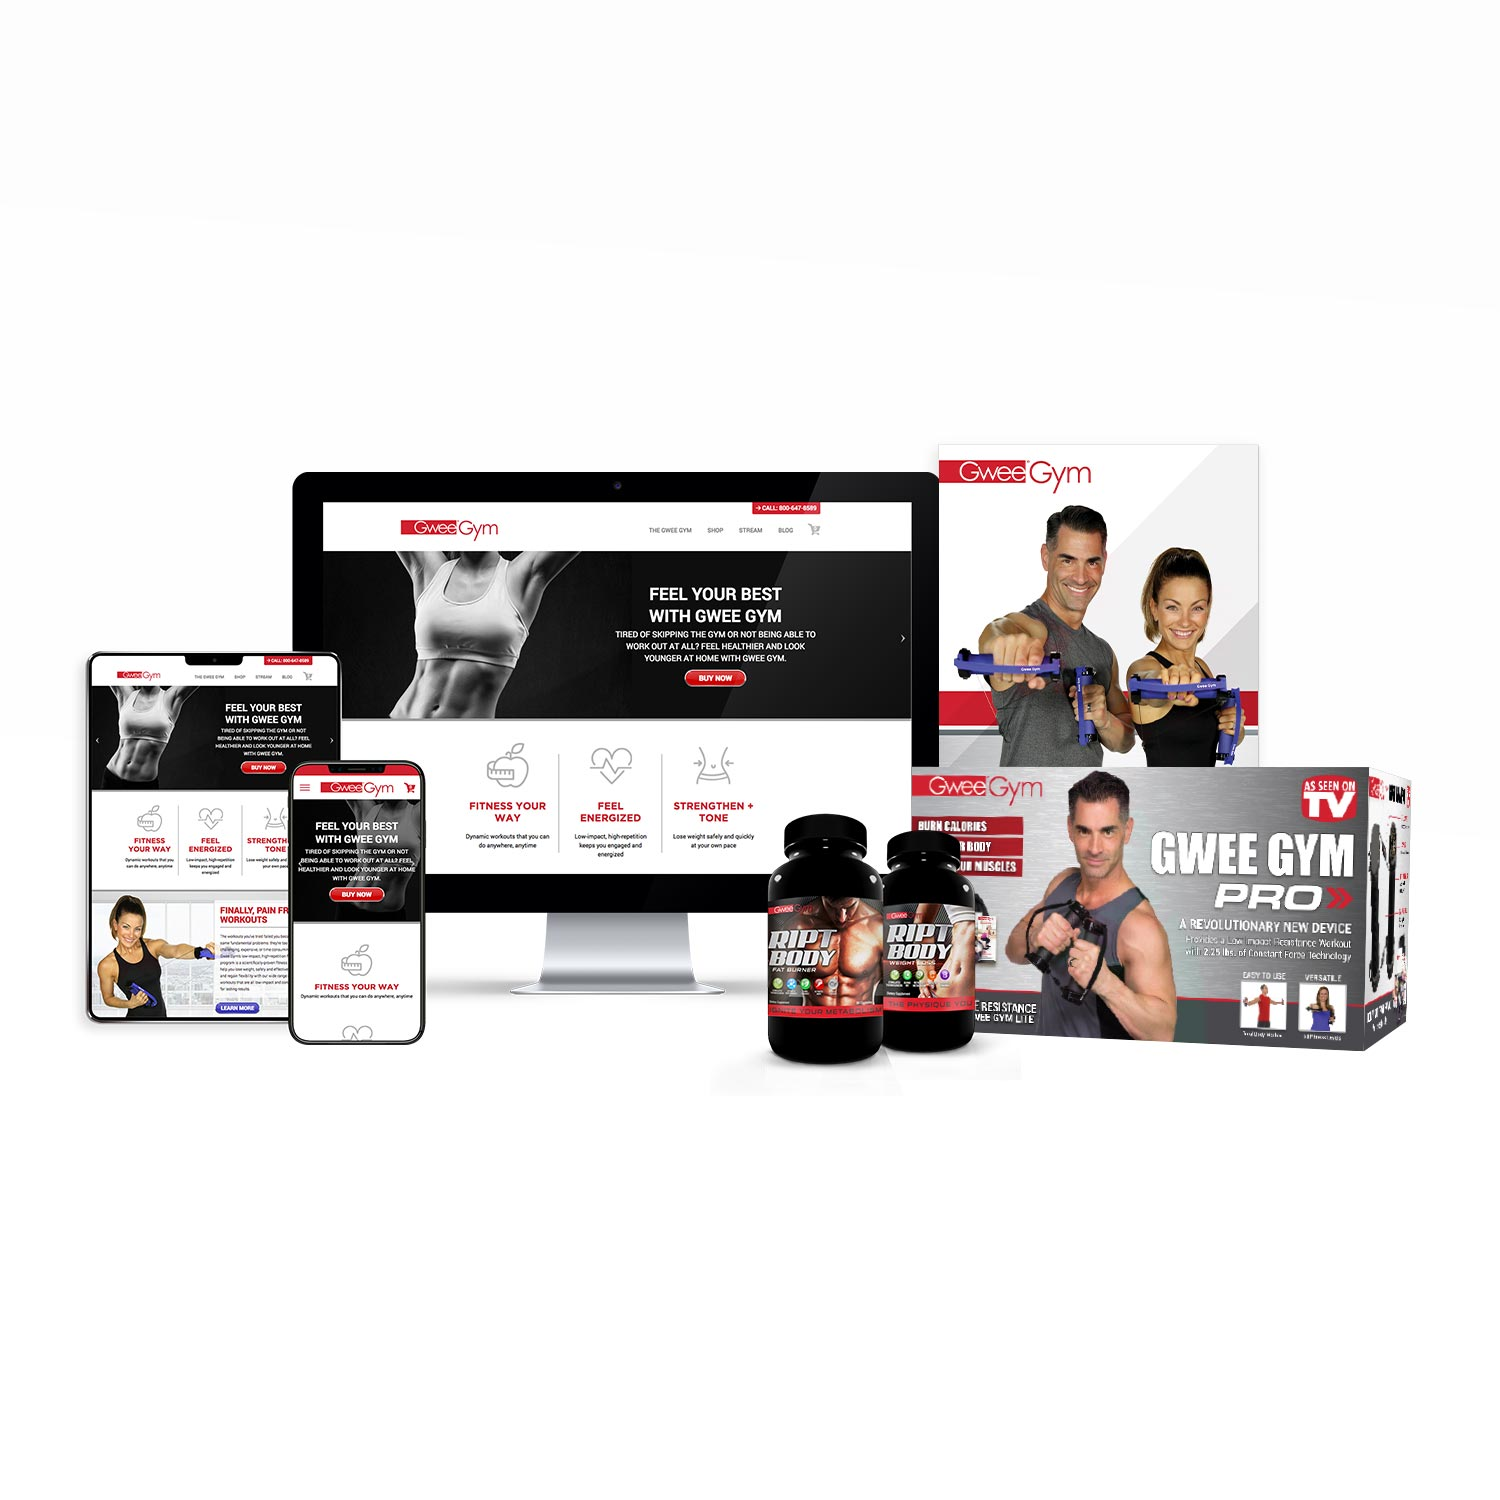 Website design, print design, product packaging design for Gwee Gym.